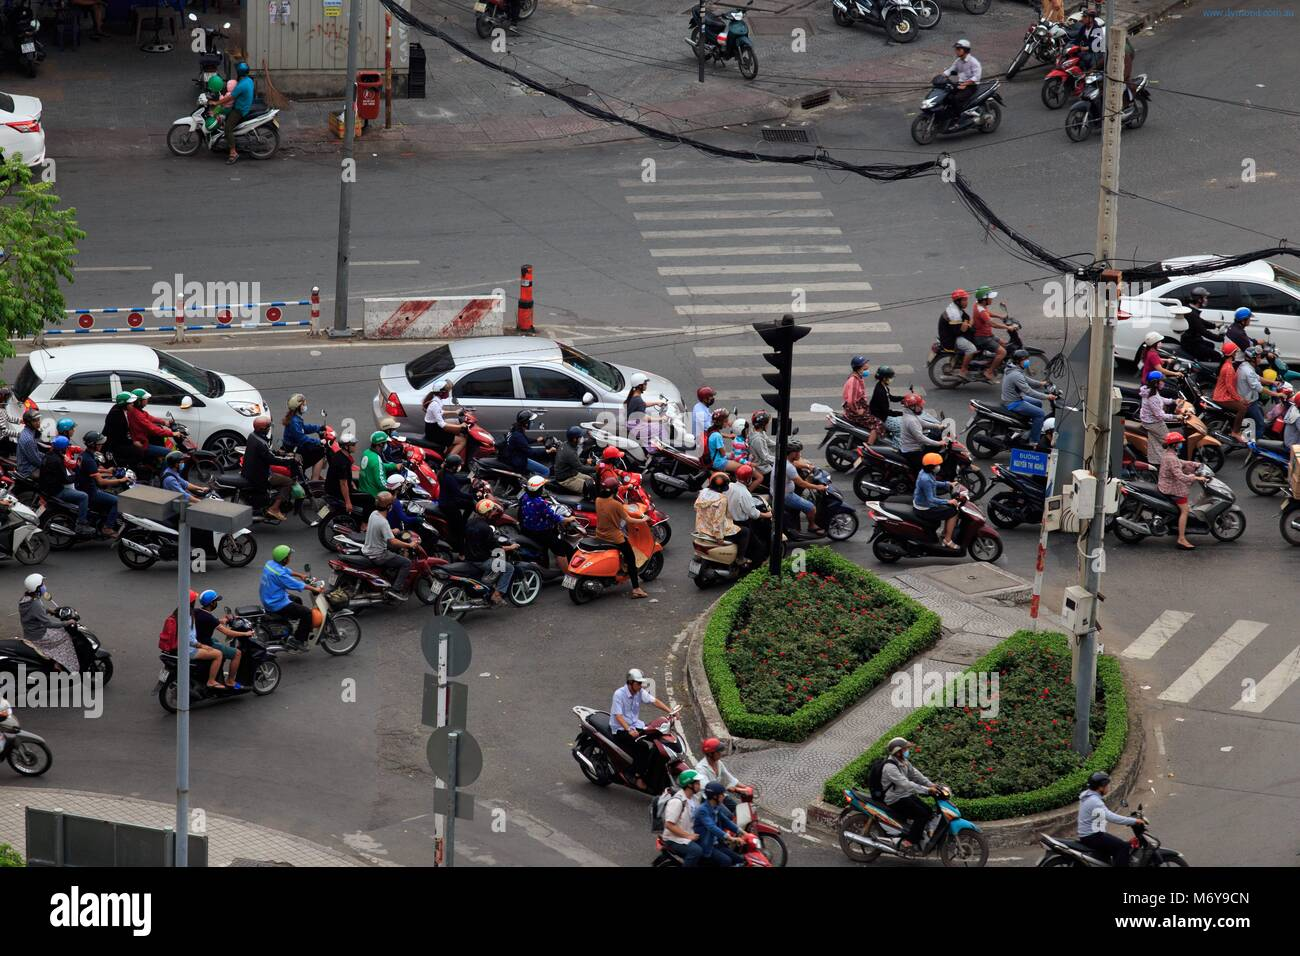 Crazy traffic at a crowded intersection in District 1 of Ho Chi Minh City, Vietnam - Stock Image